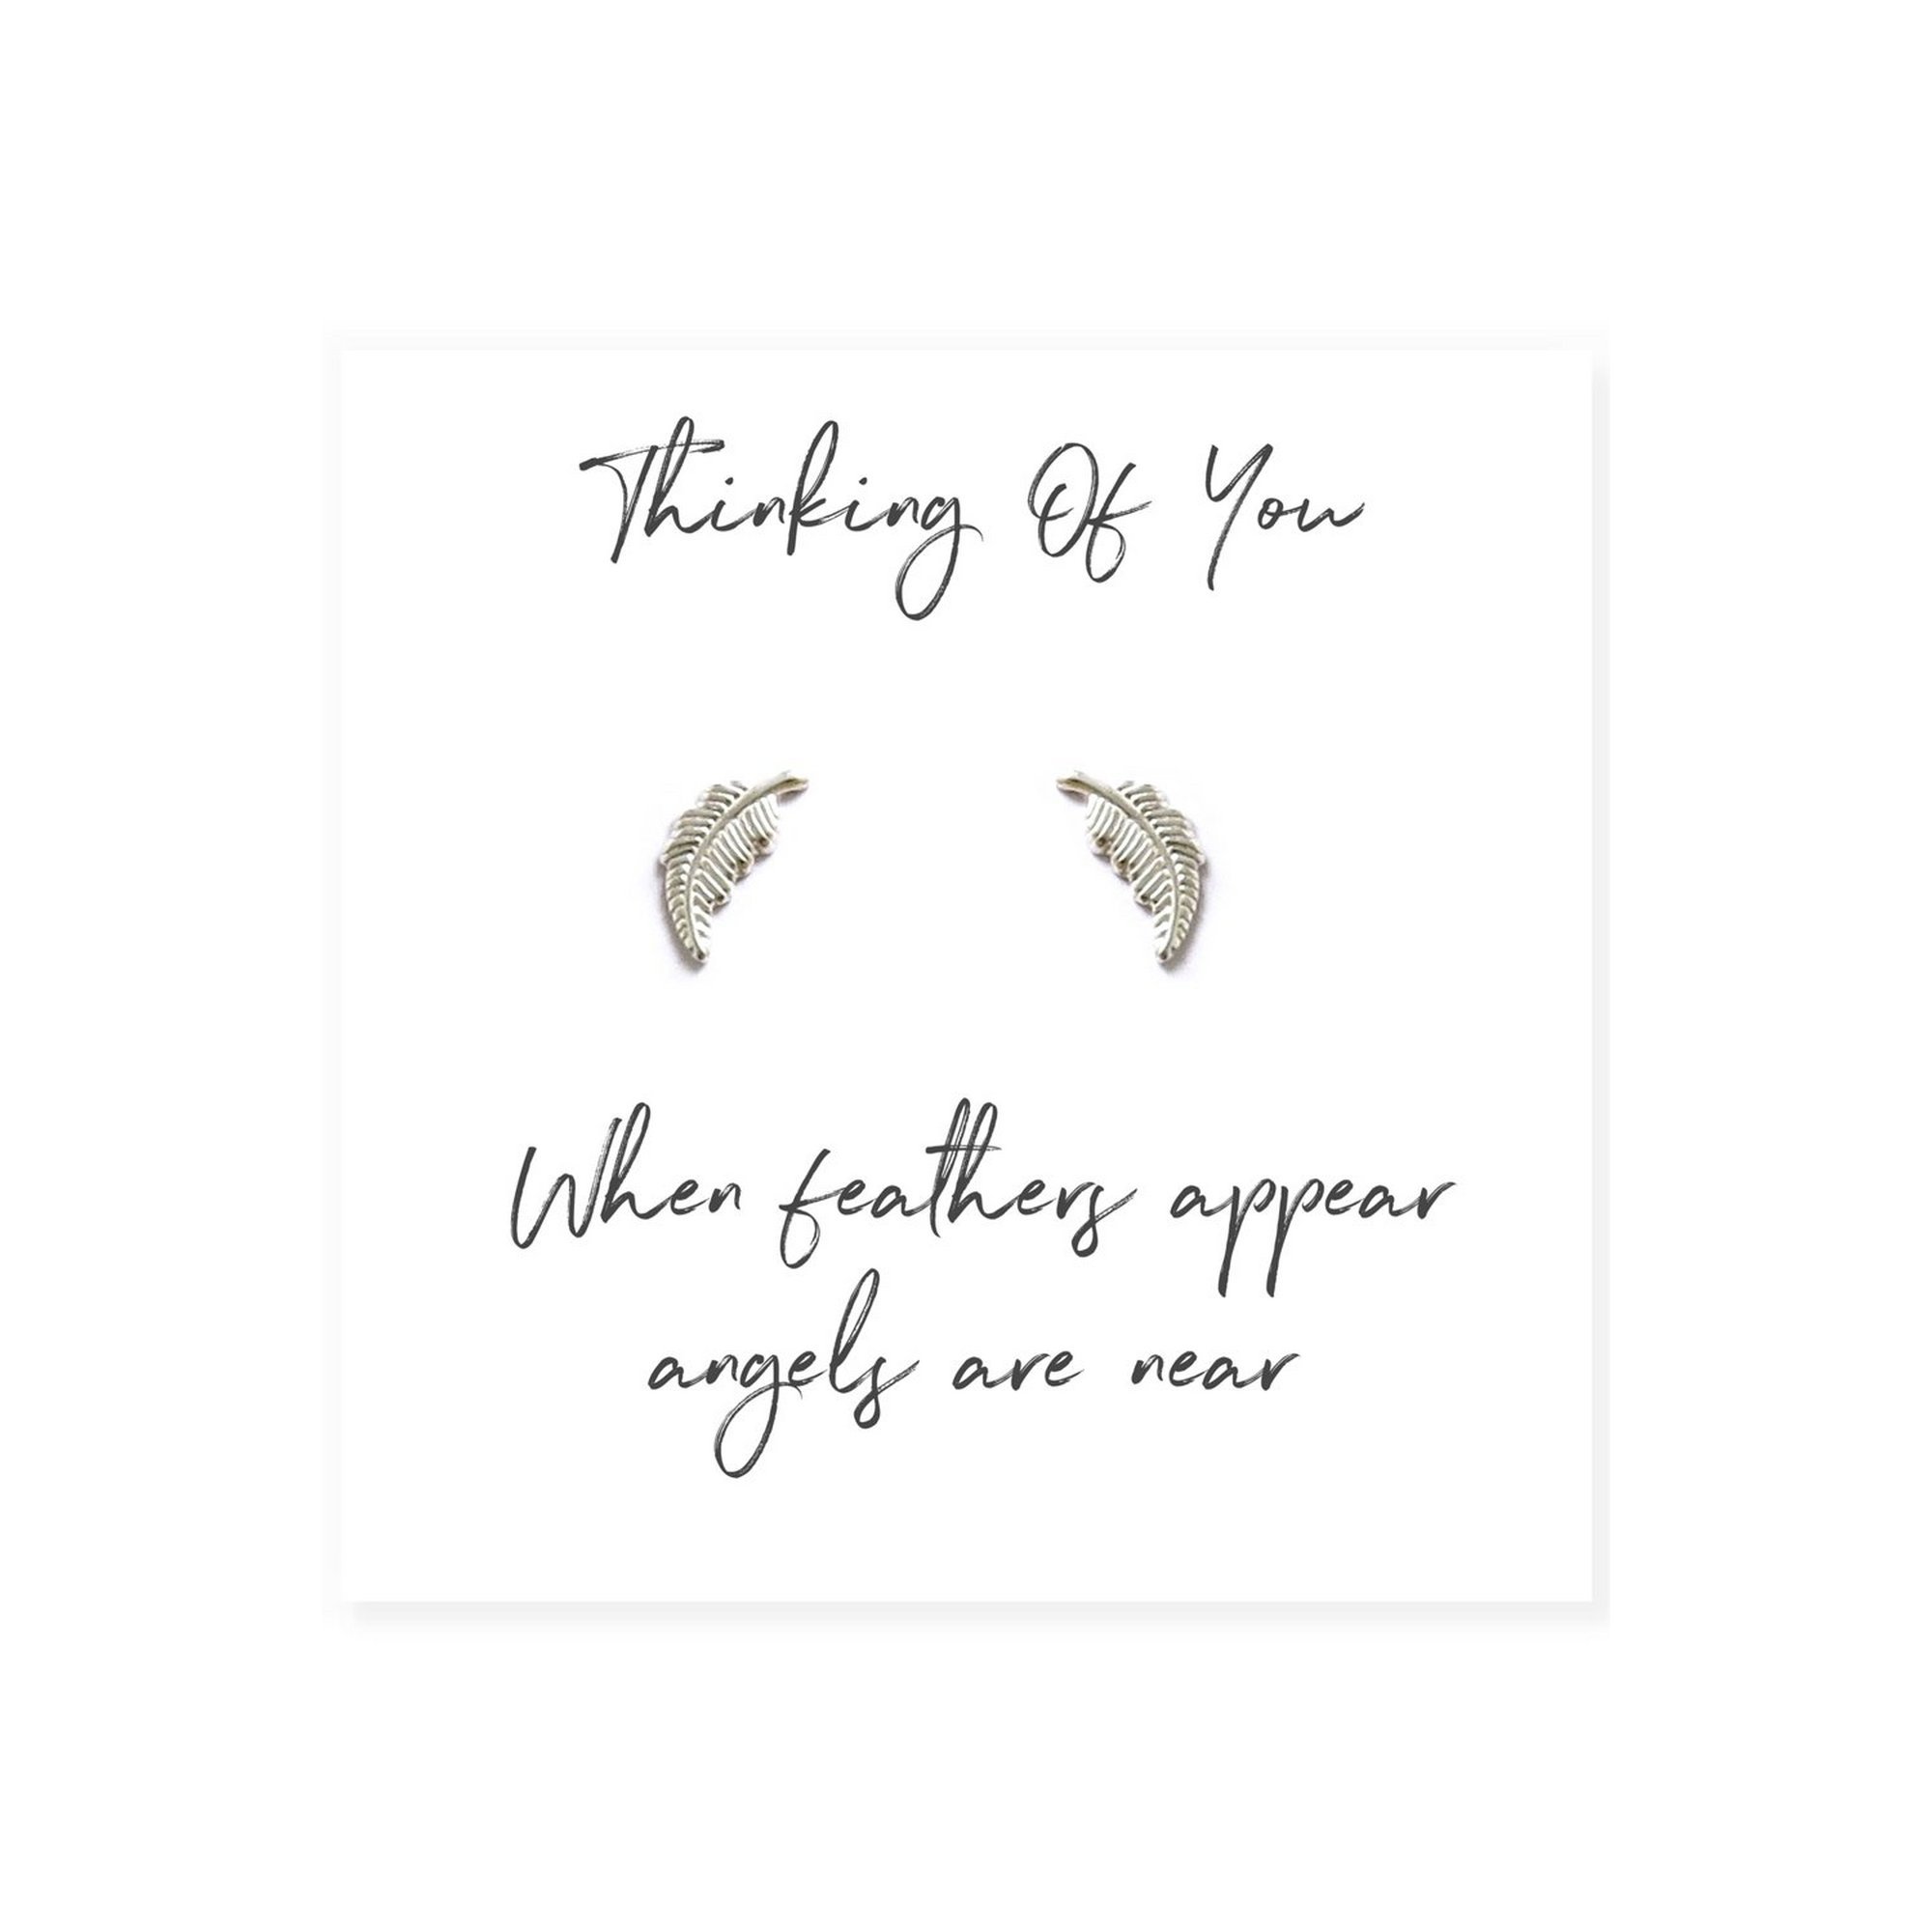 Image of Angel Feather Sterling Silver Earrings on Message Card